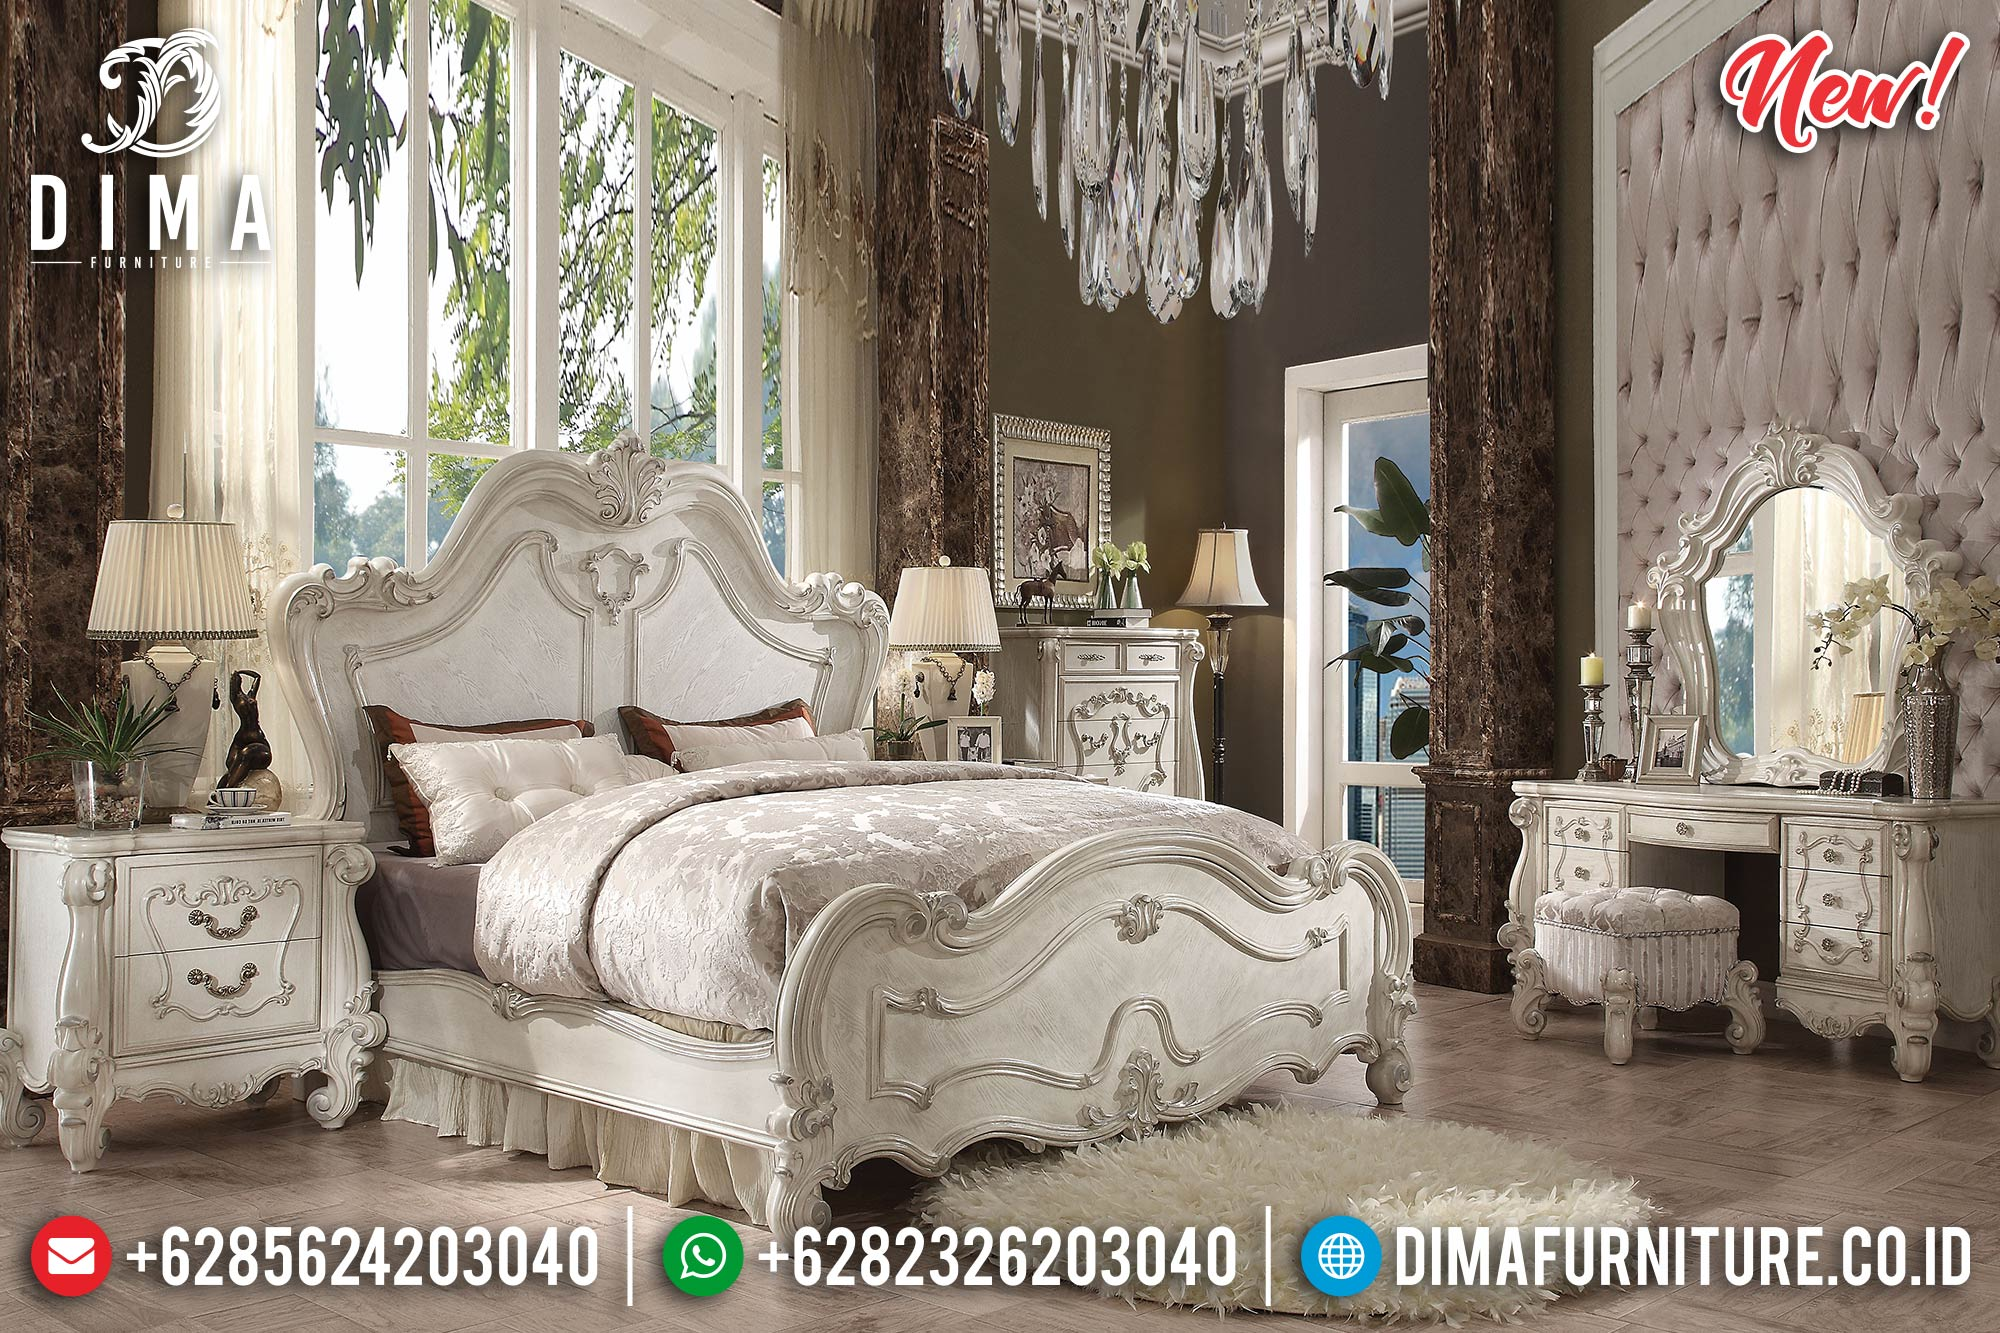 Harga Kamar Set Mewah Luxury Carving White Bone Duco Furniture Jepara BT-0884